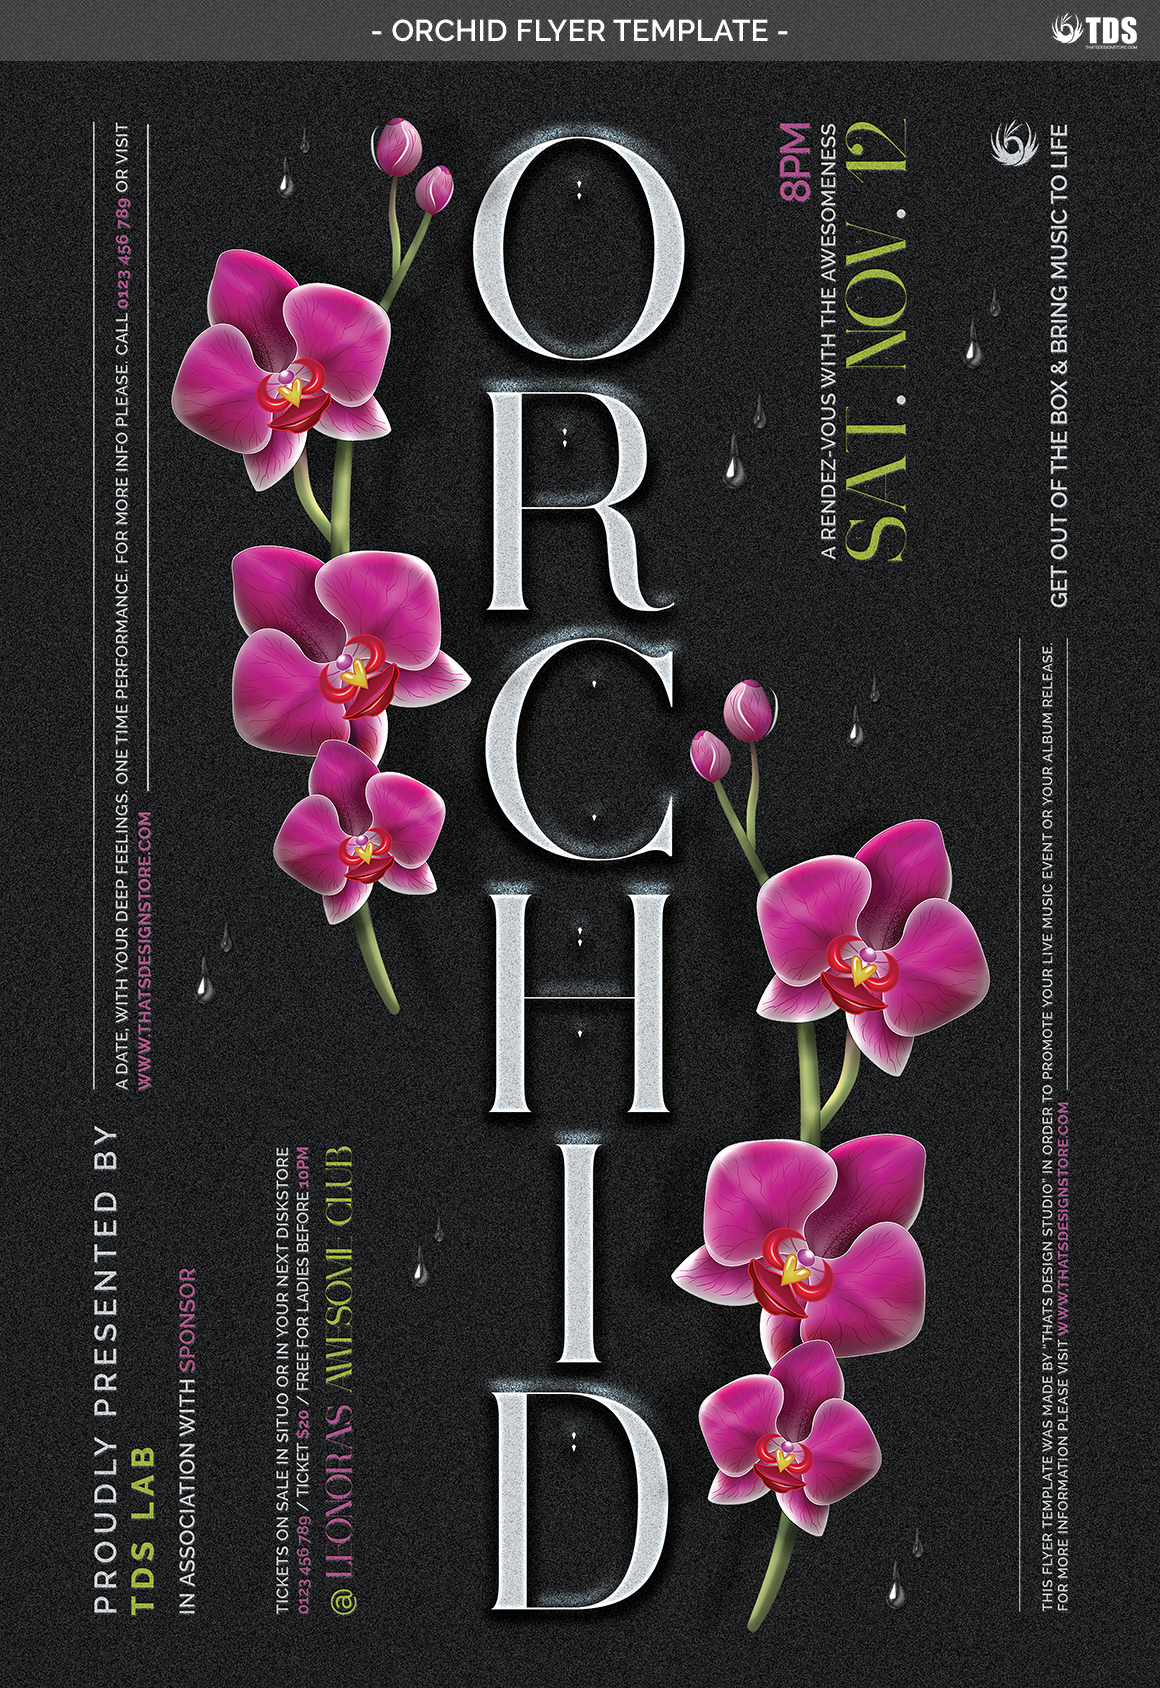 Orchid Flyer Template example image 5